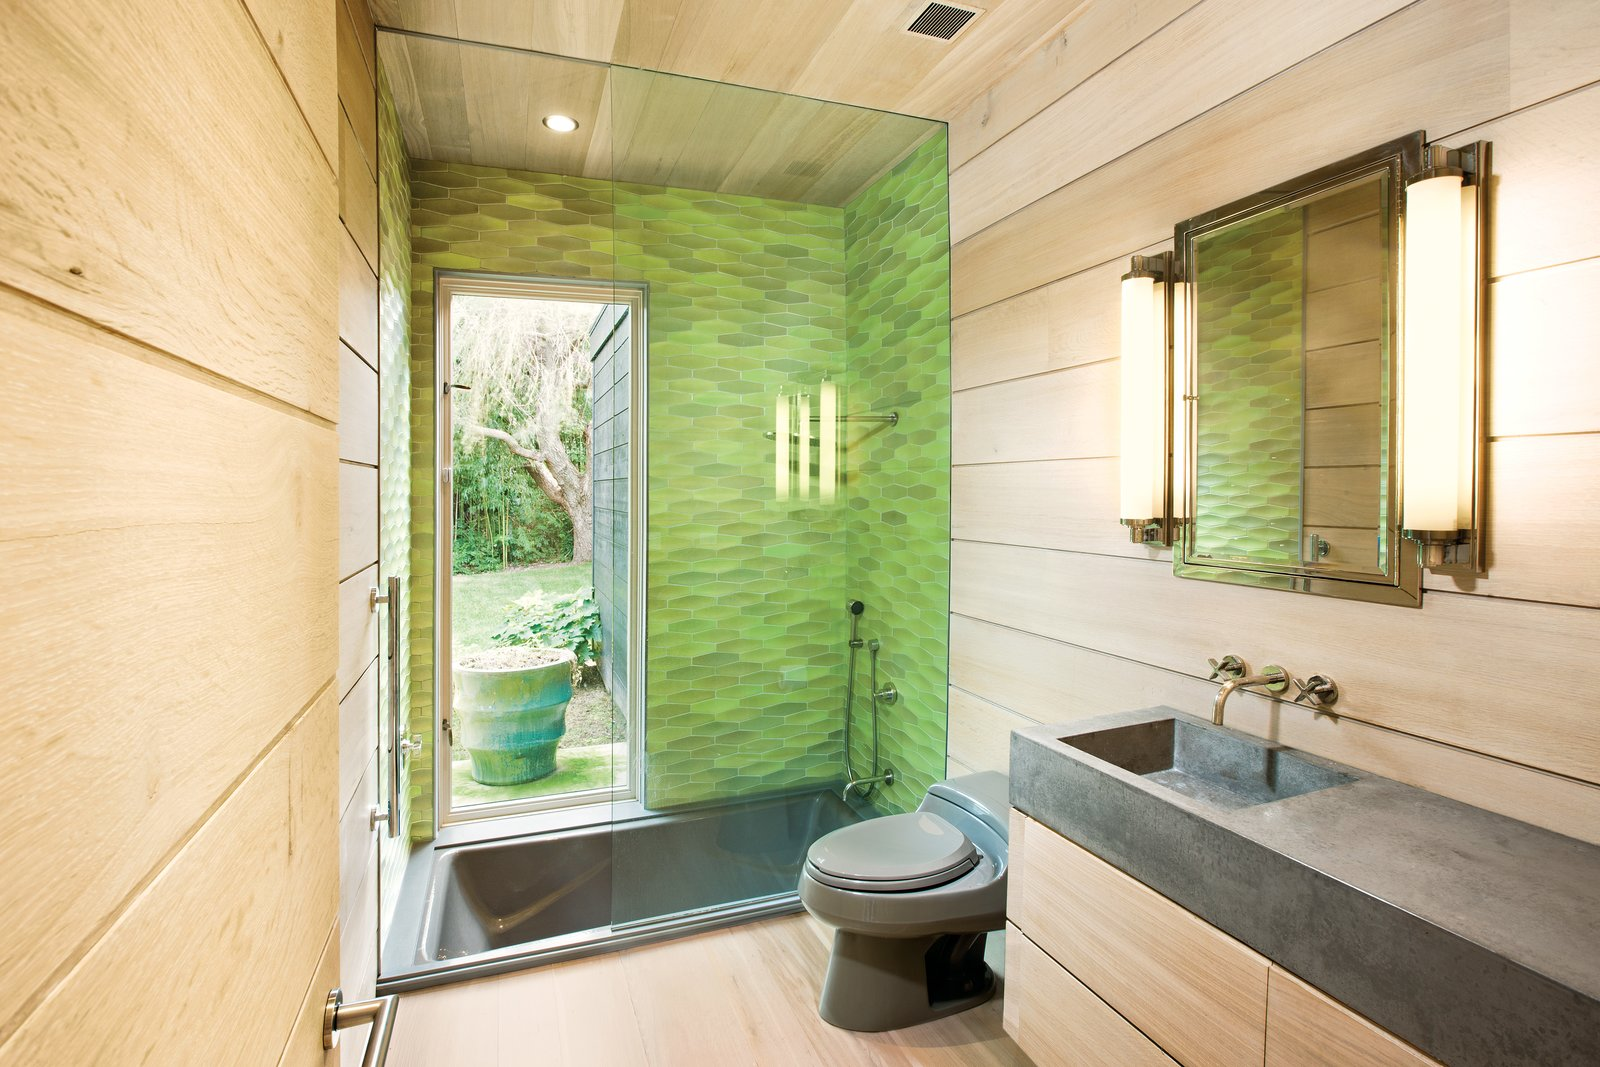 Bath Room, Soaking Tub, Enclosed Shower, Light Hardwood Floor, and Concrete Counter In the bathroom, Martin selected Heath Ceramics Conclave Diamond tile in citrus green for the glass-enclosed Kohler tub, which is outfitted with nickel Kallista fixtures. A matching toilet by Kohler   in the color Cashmere blends with the custom-fabricated concrete sink by Get Real Surfaces. Photo by Patrick Bernard.  Mid Century from A Sustainable Mid-Century Beach House